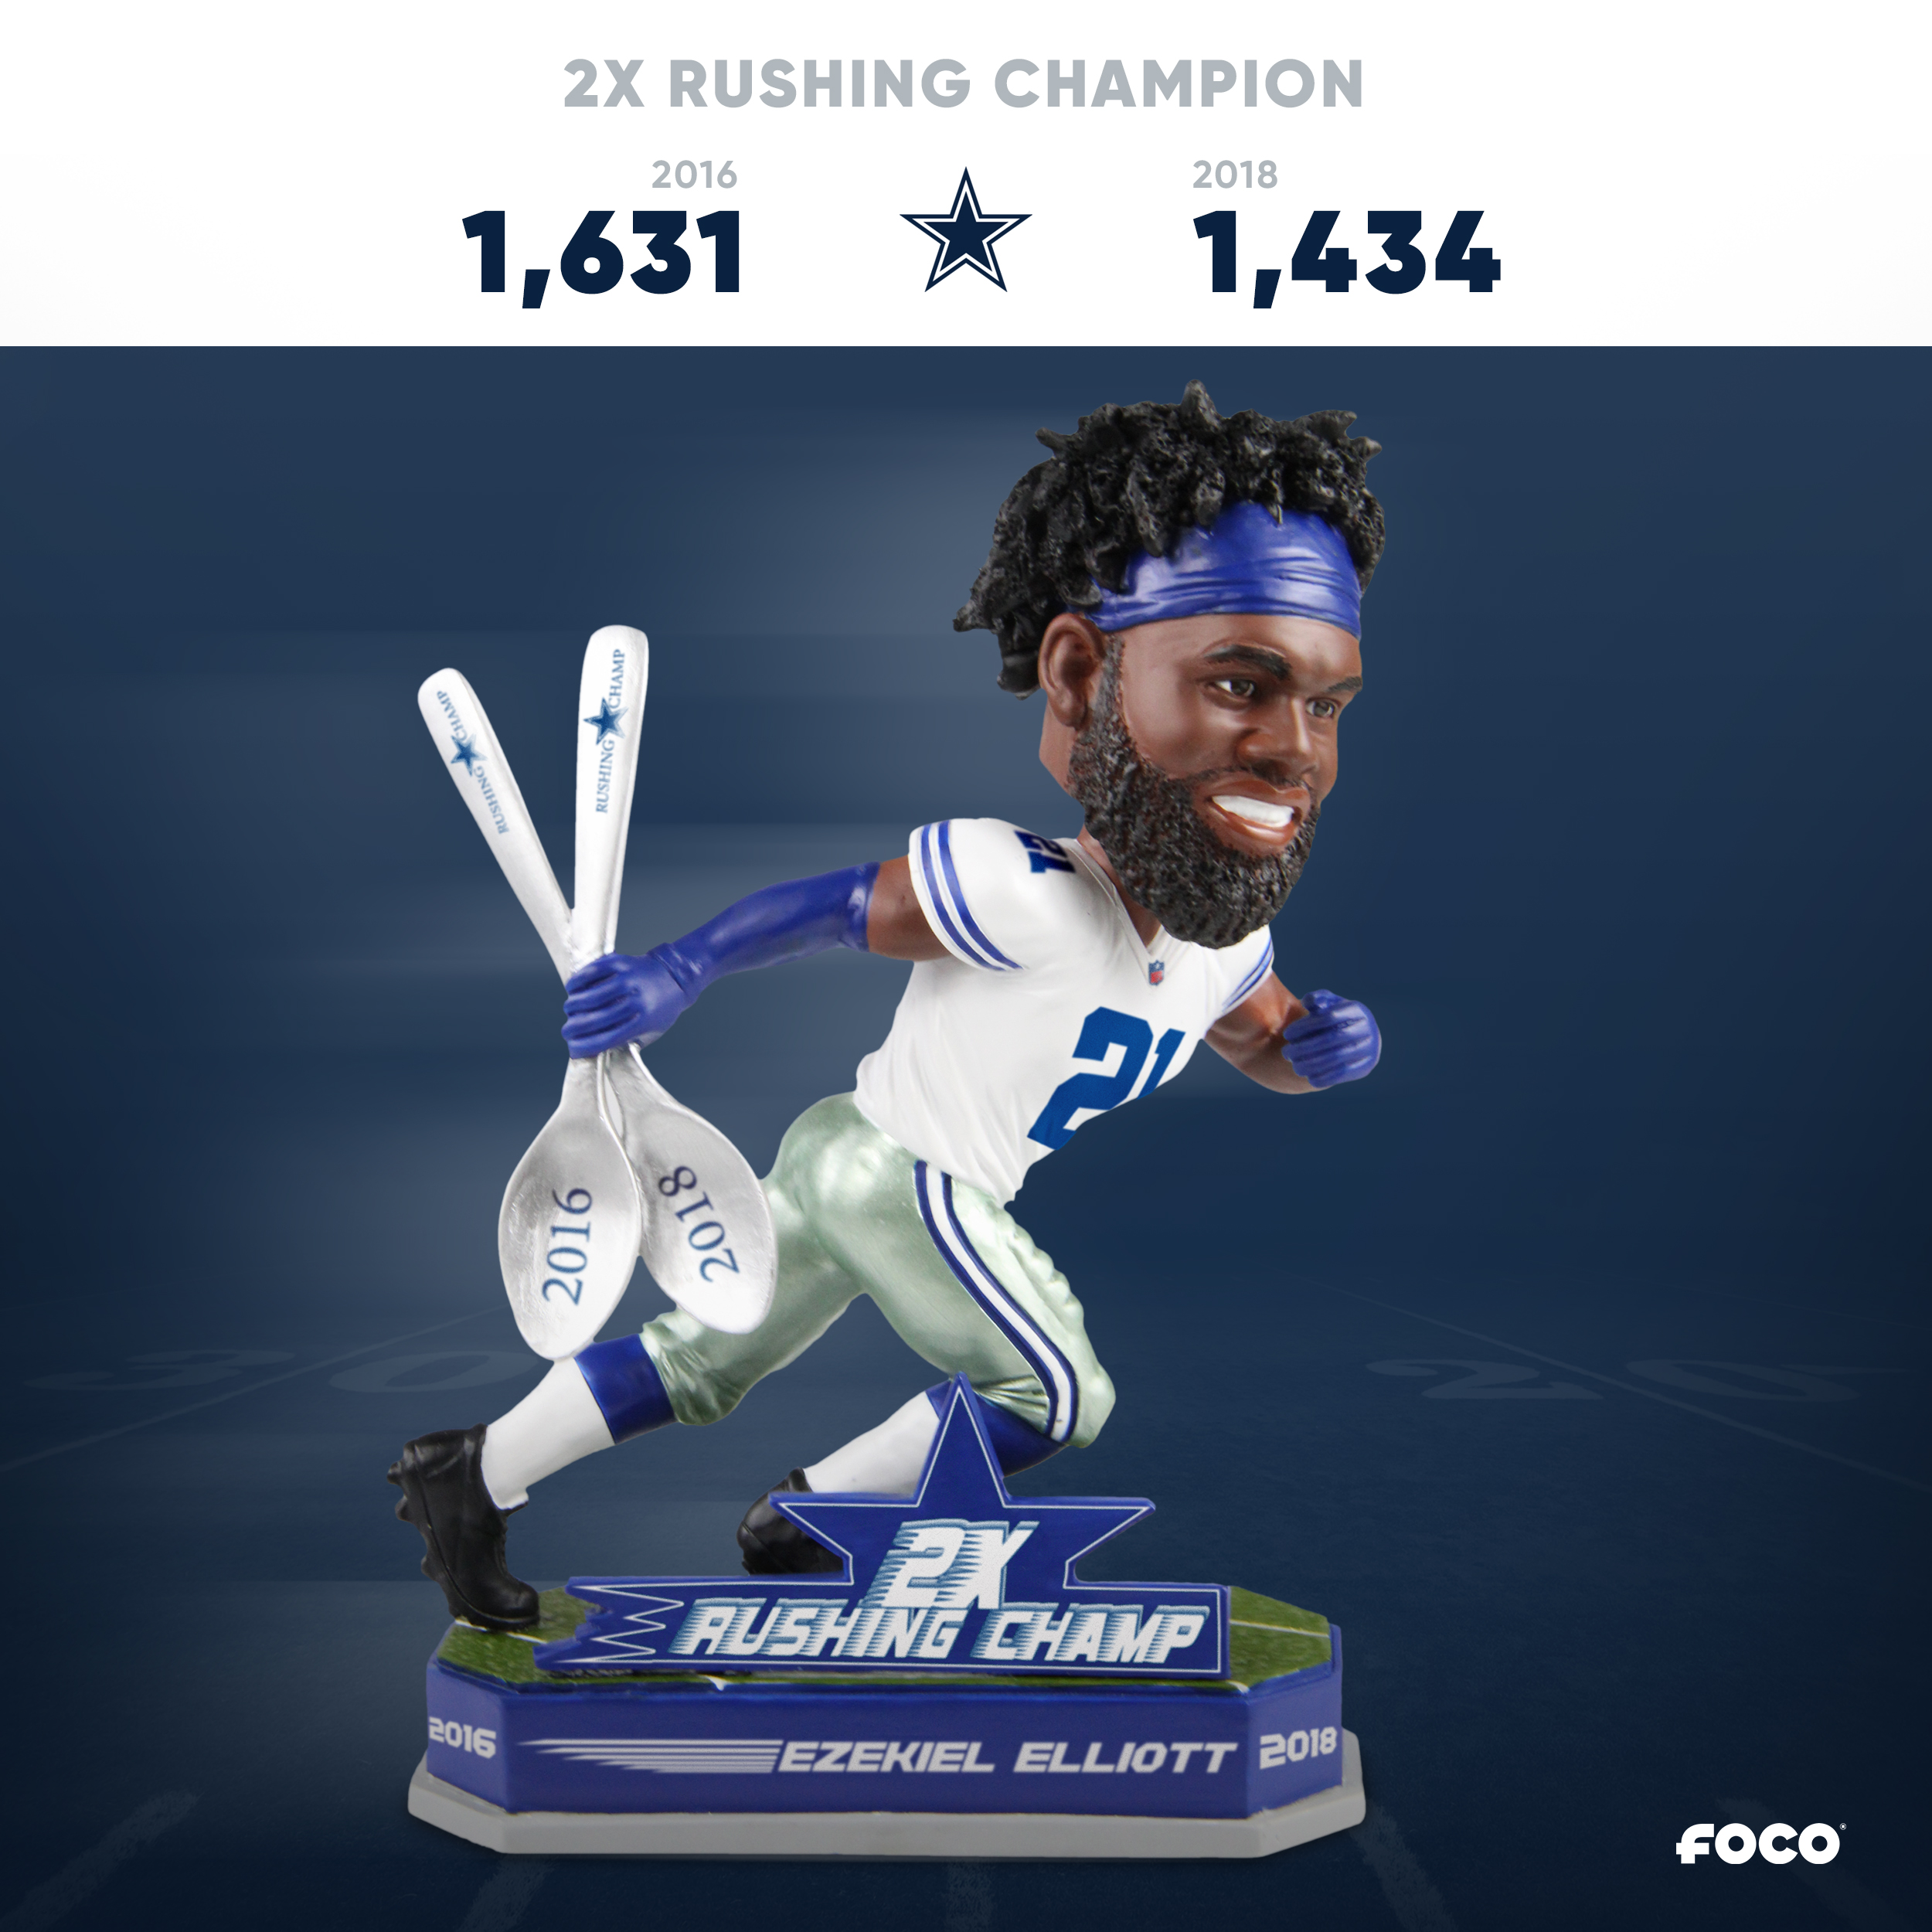 8db19a9cc87 The Ezekiel Elliot Dallas Cowboys 2X Rushing Champion Bobblehead depicts the  2-time NFL Rushing Champ in an action pose, with two spoons in his hand to  pay ...